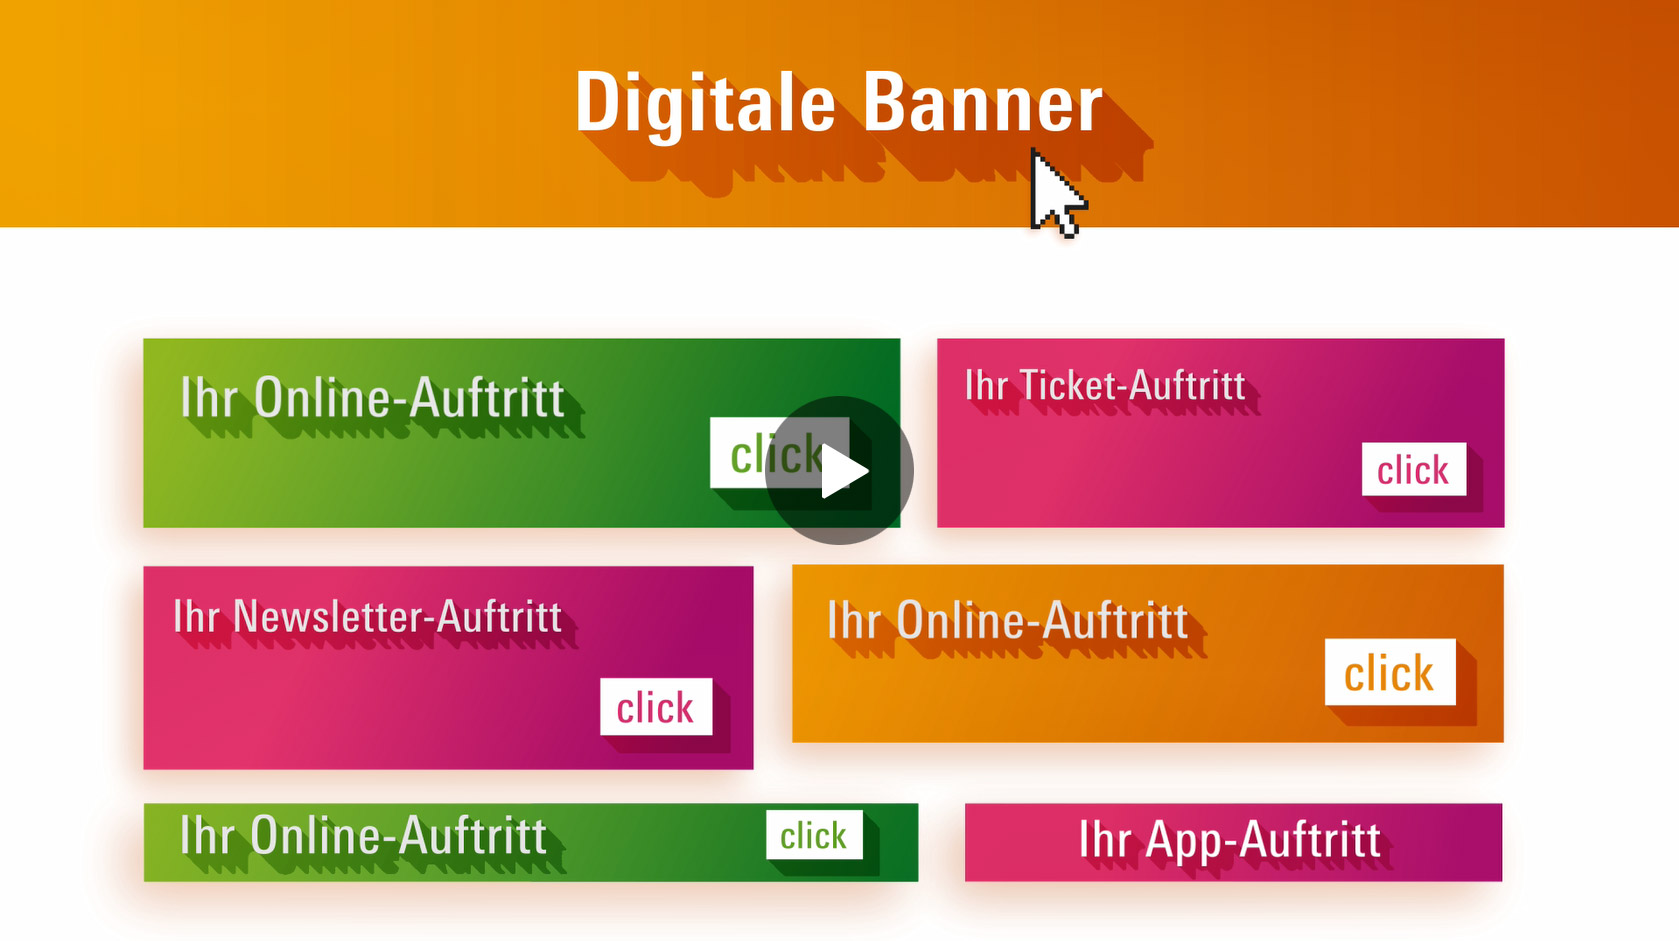 Digital Banner at Messe Frankfurt websites and apps